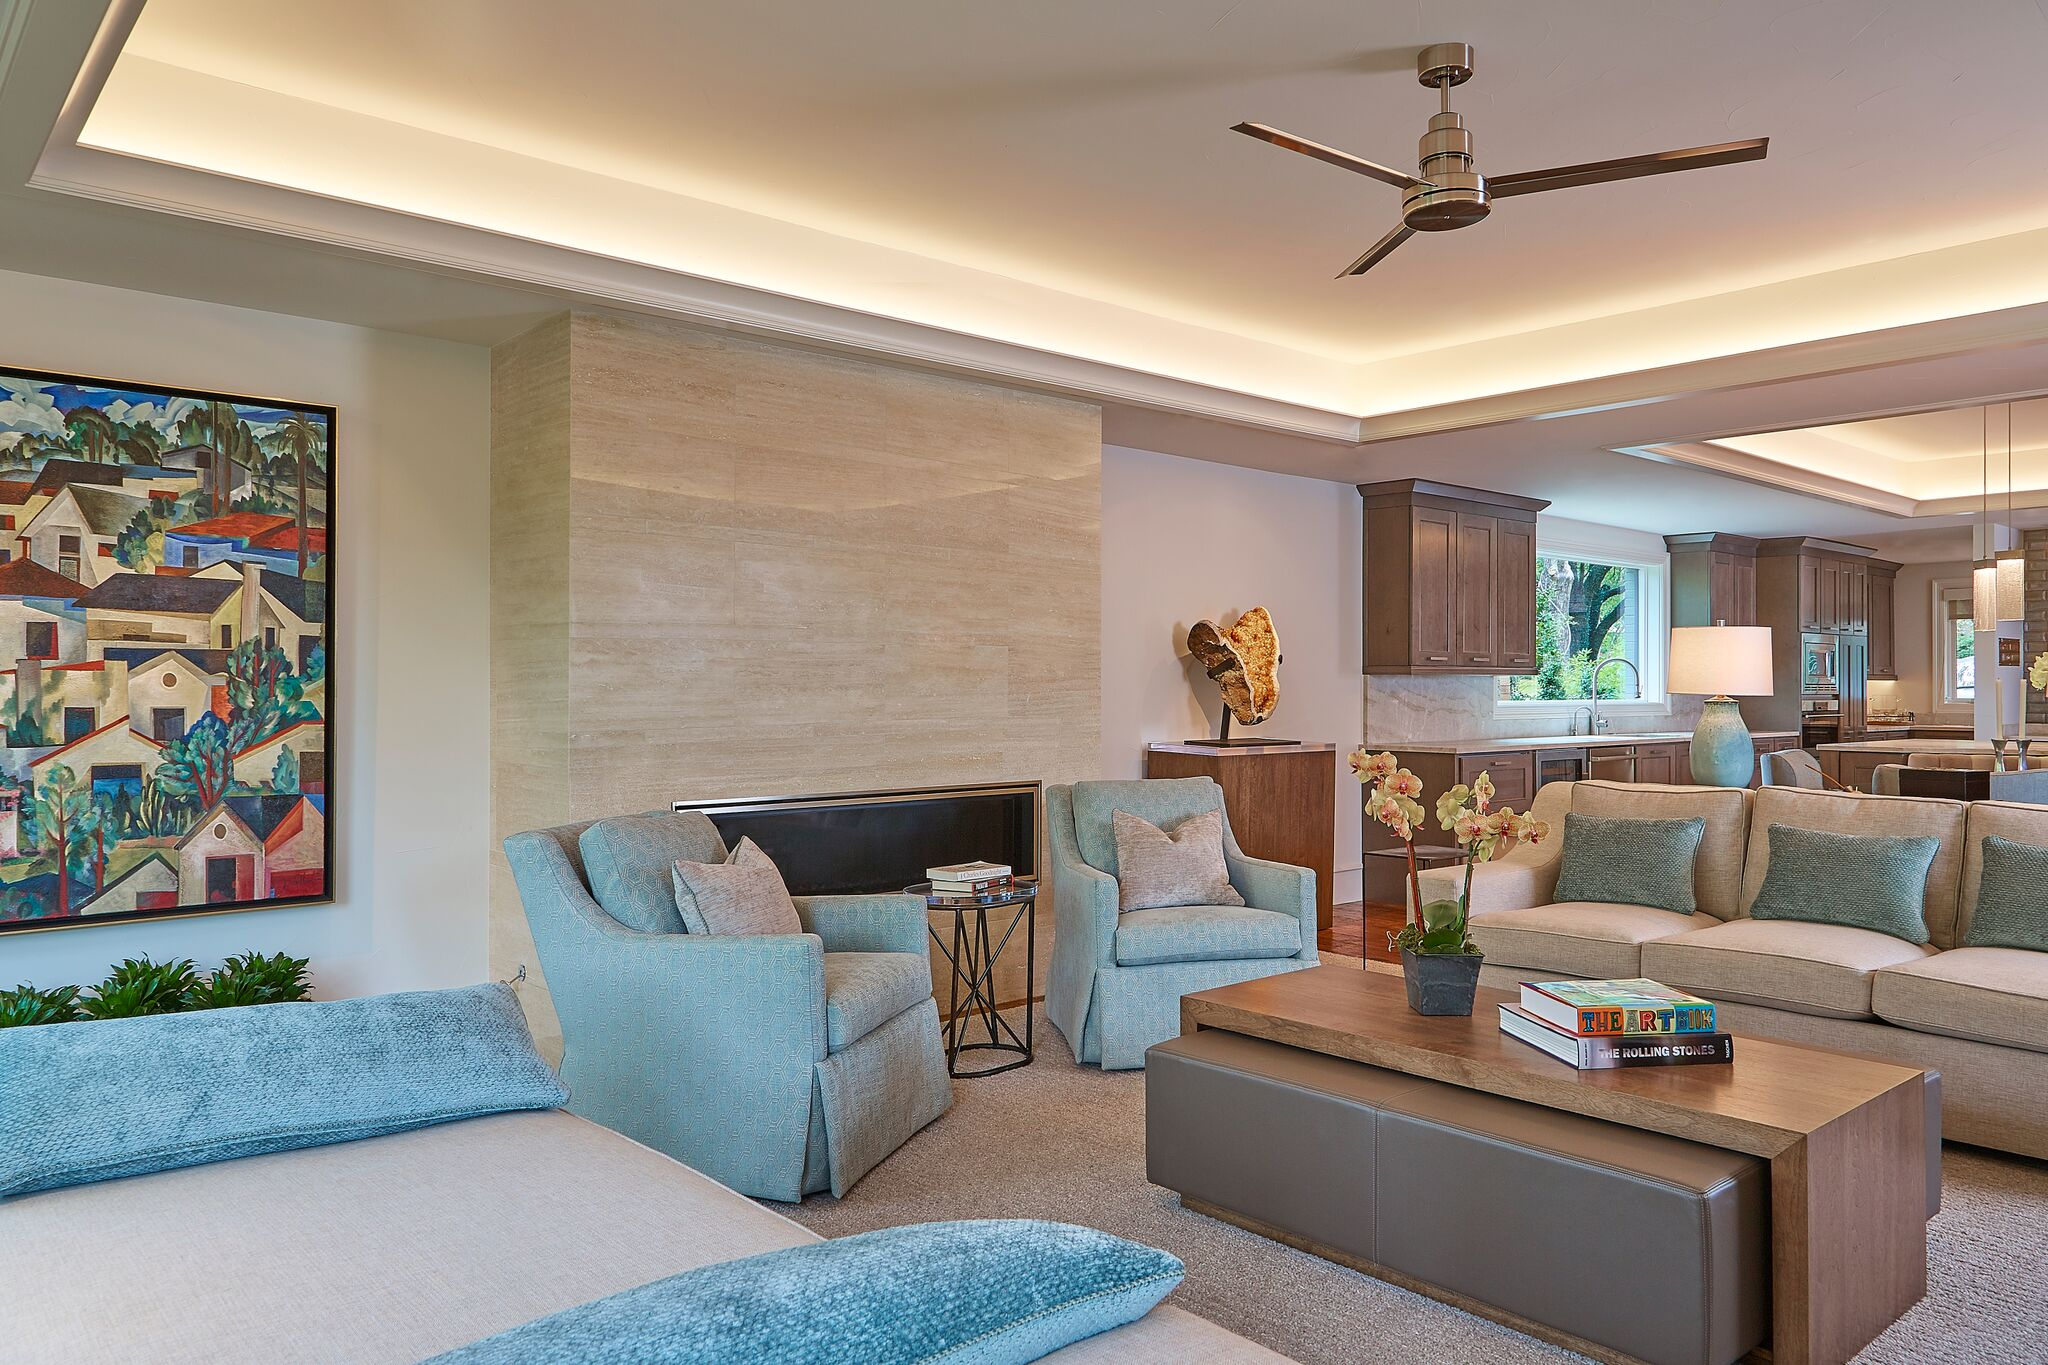 3.Image for featured residential residential project.jpeg